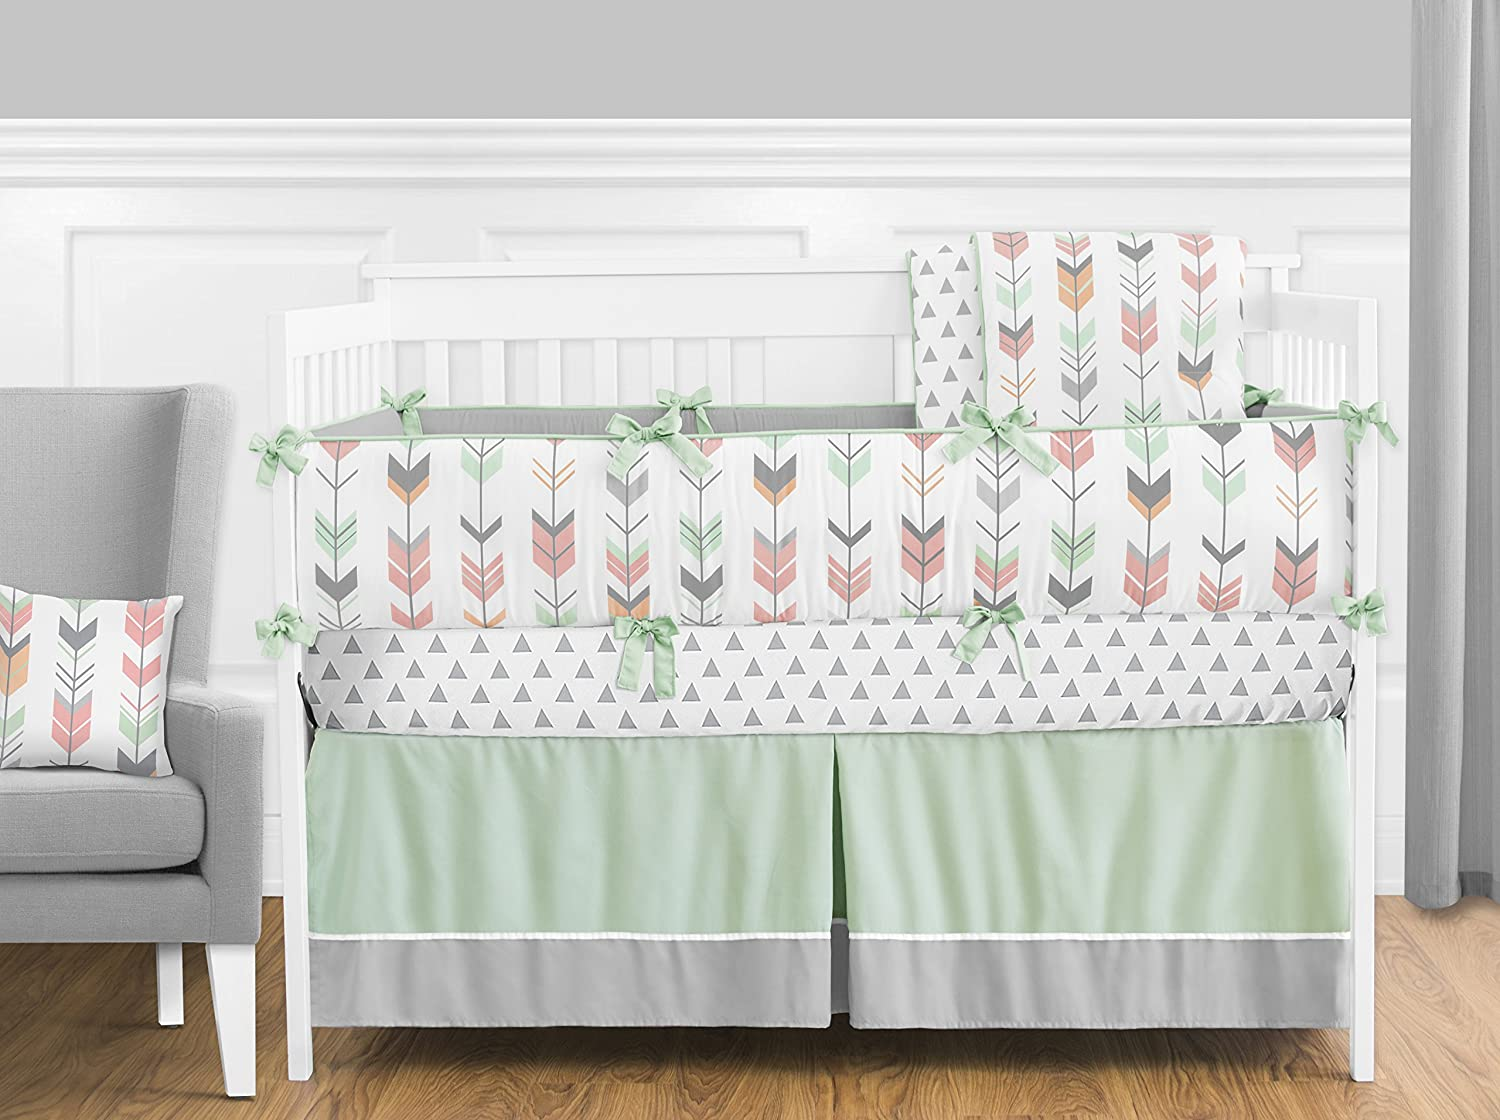 Coral and Mint Woodland Arrow Baby Girls Changing Pad Cover B01HHAXCTG Sweet Jojo Designs Grey